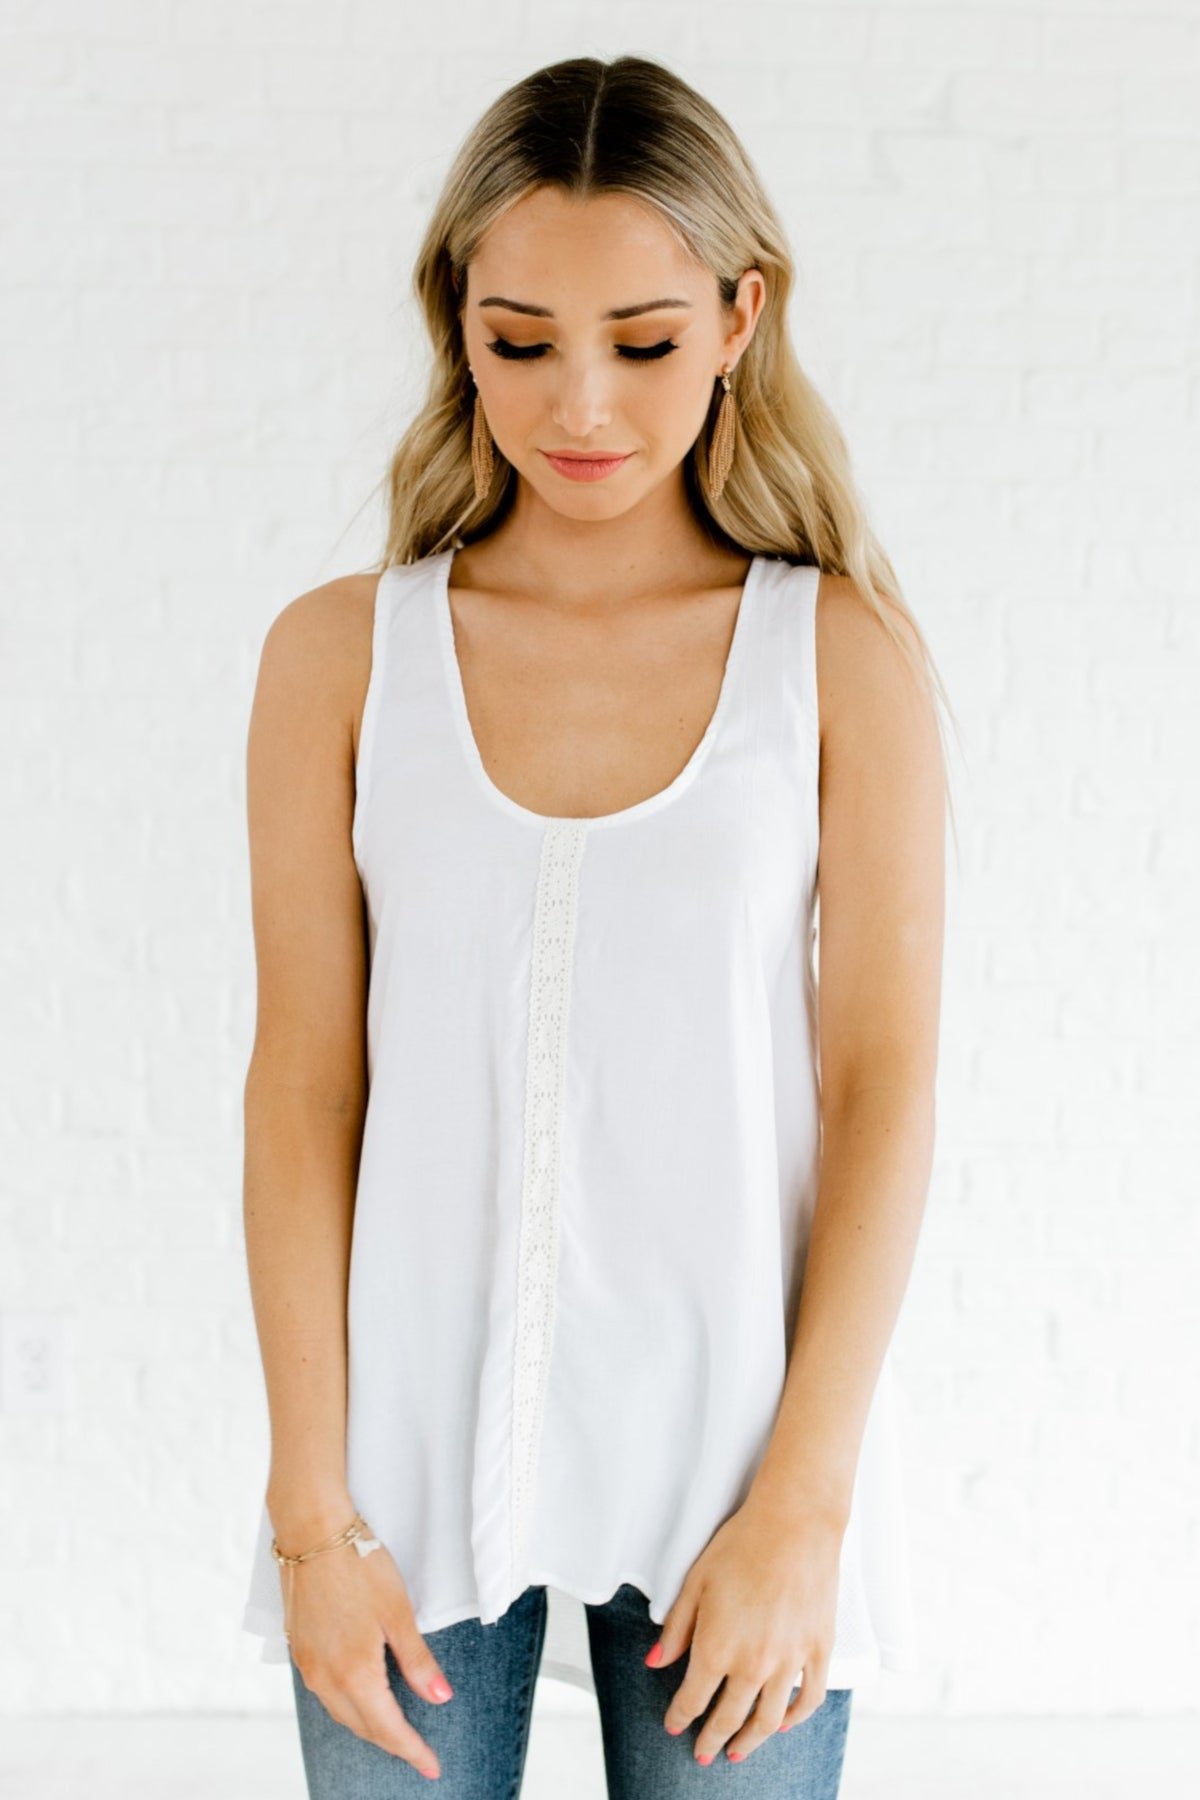 White High-Low Hem Style Stone Washed Boutique Tank Tops for Women